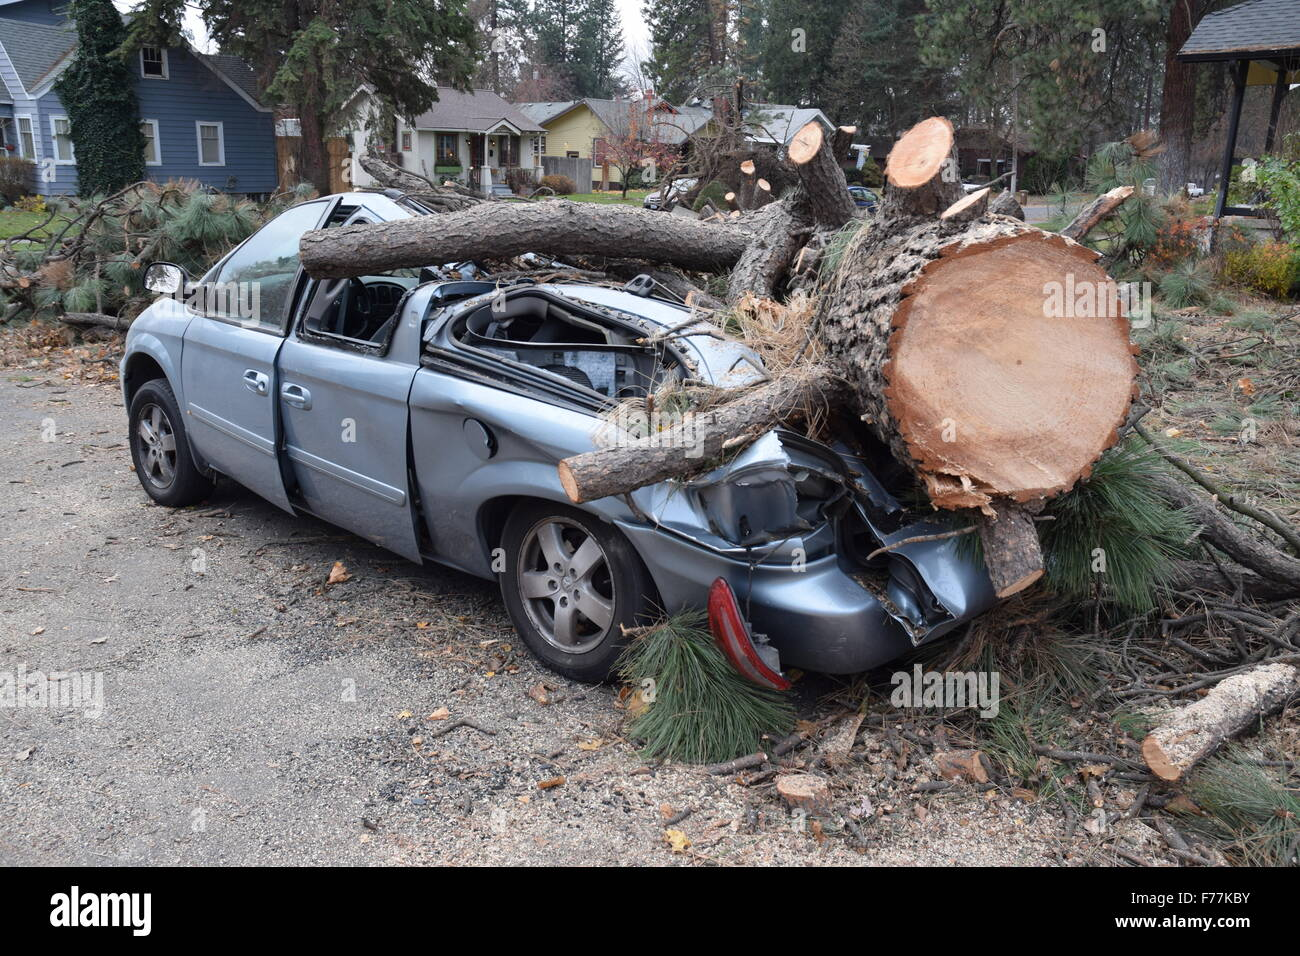 Crushed auto after storm. Stock Photo